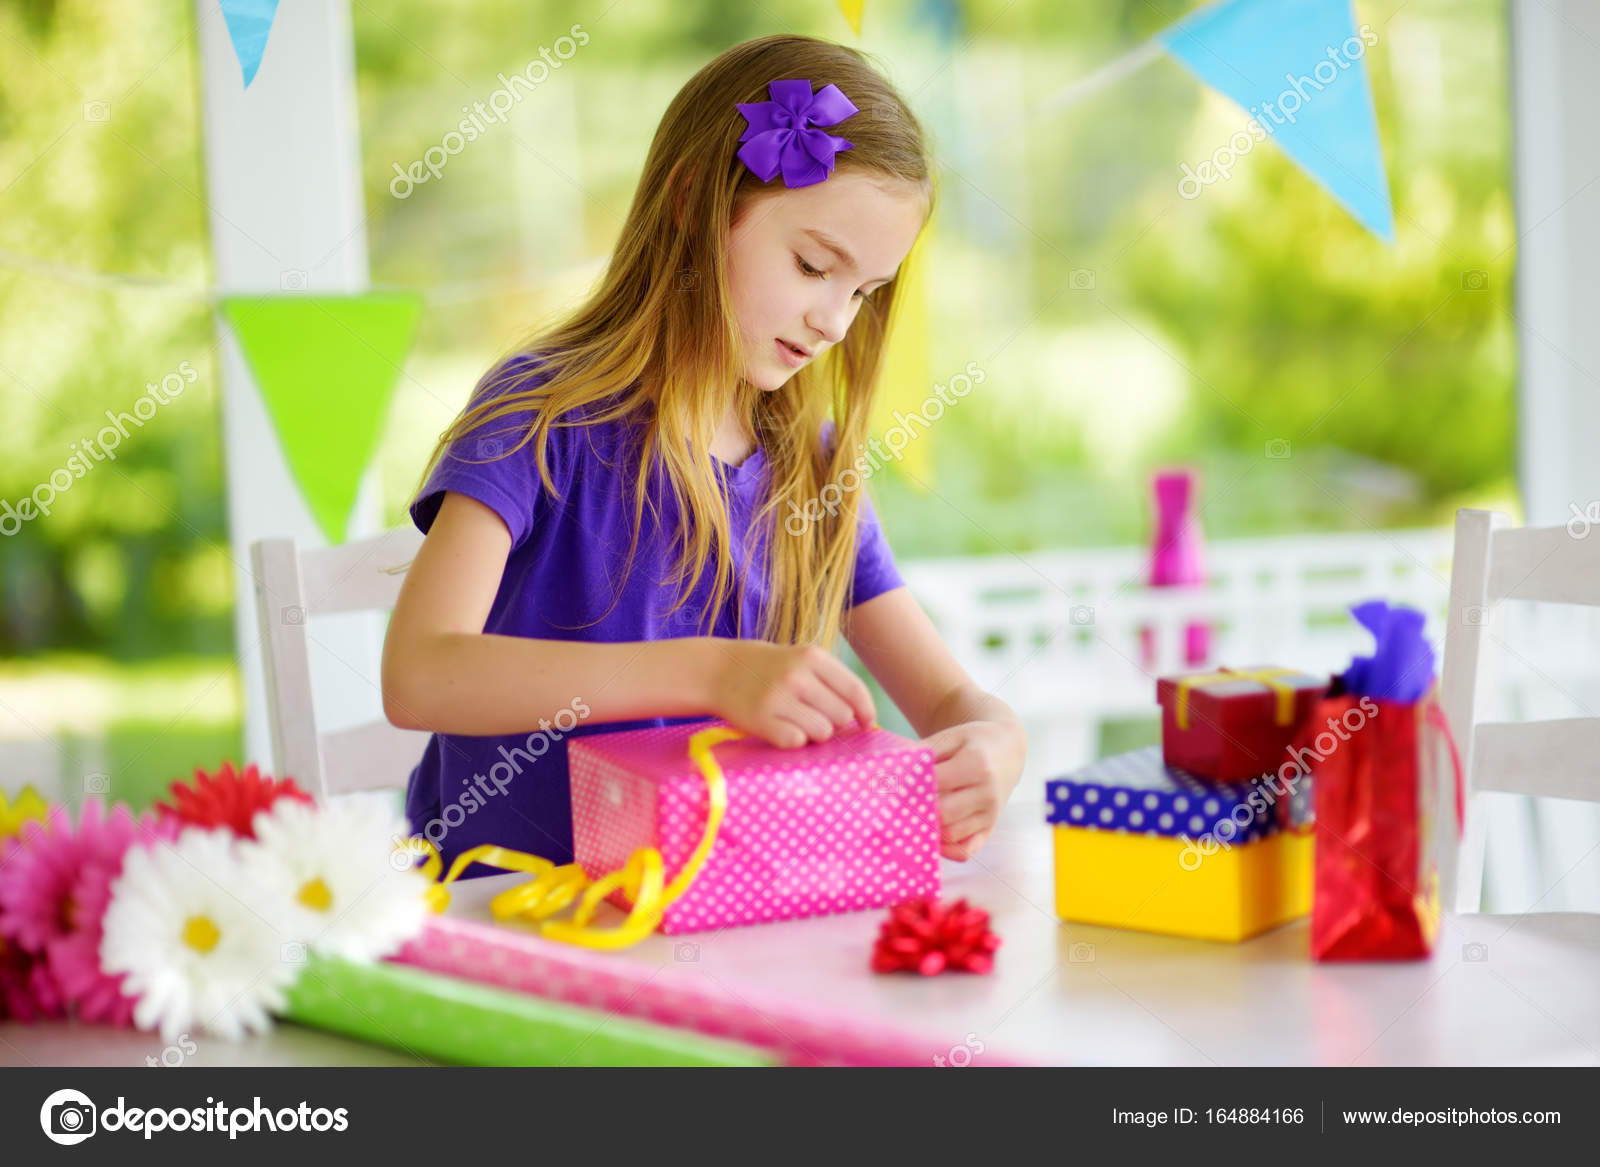 Cute girl wrapping gift — Stock Photo © MNStudio #164884166